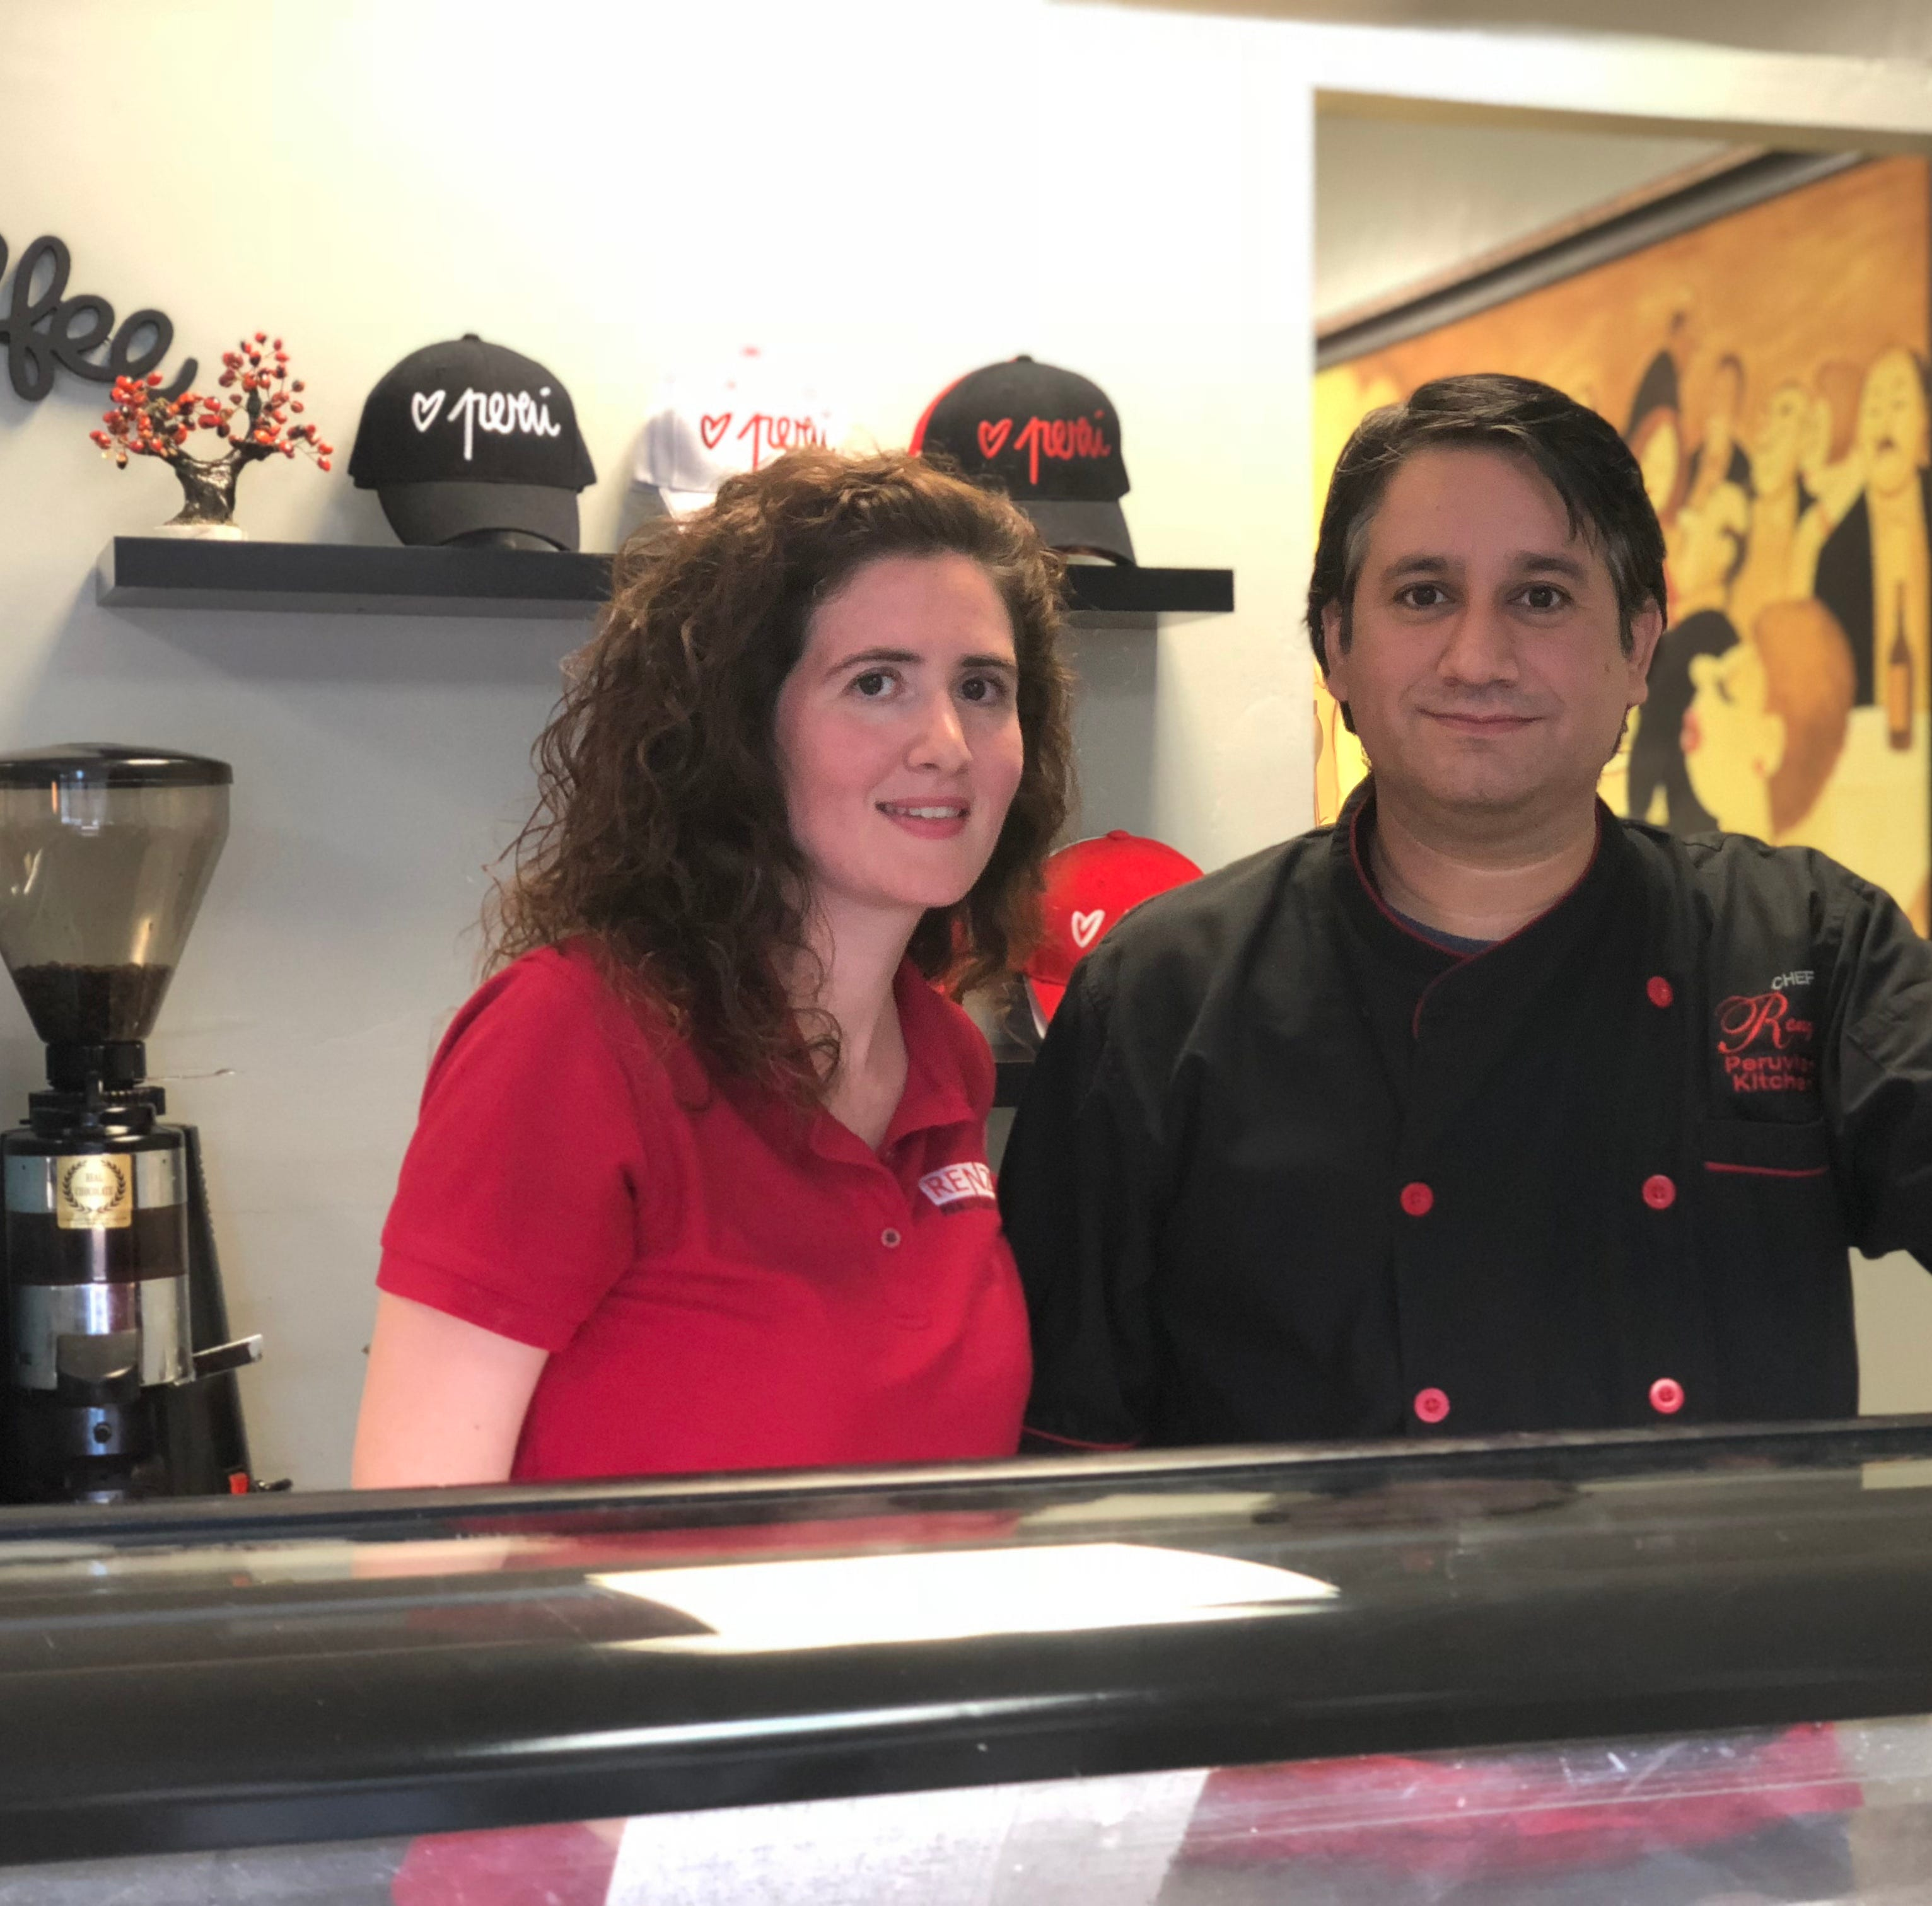 Cape Coral restaurants: Real Chocolate becomes Renzo's Peruvian Kitchen